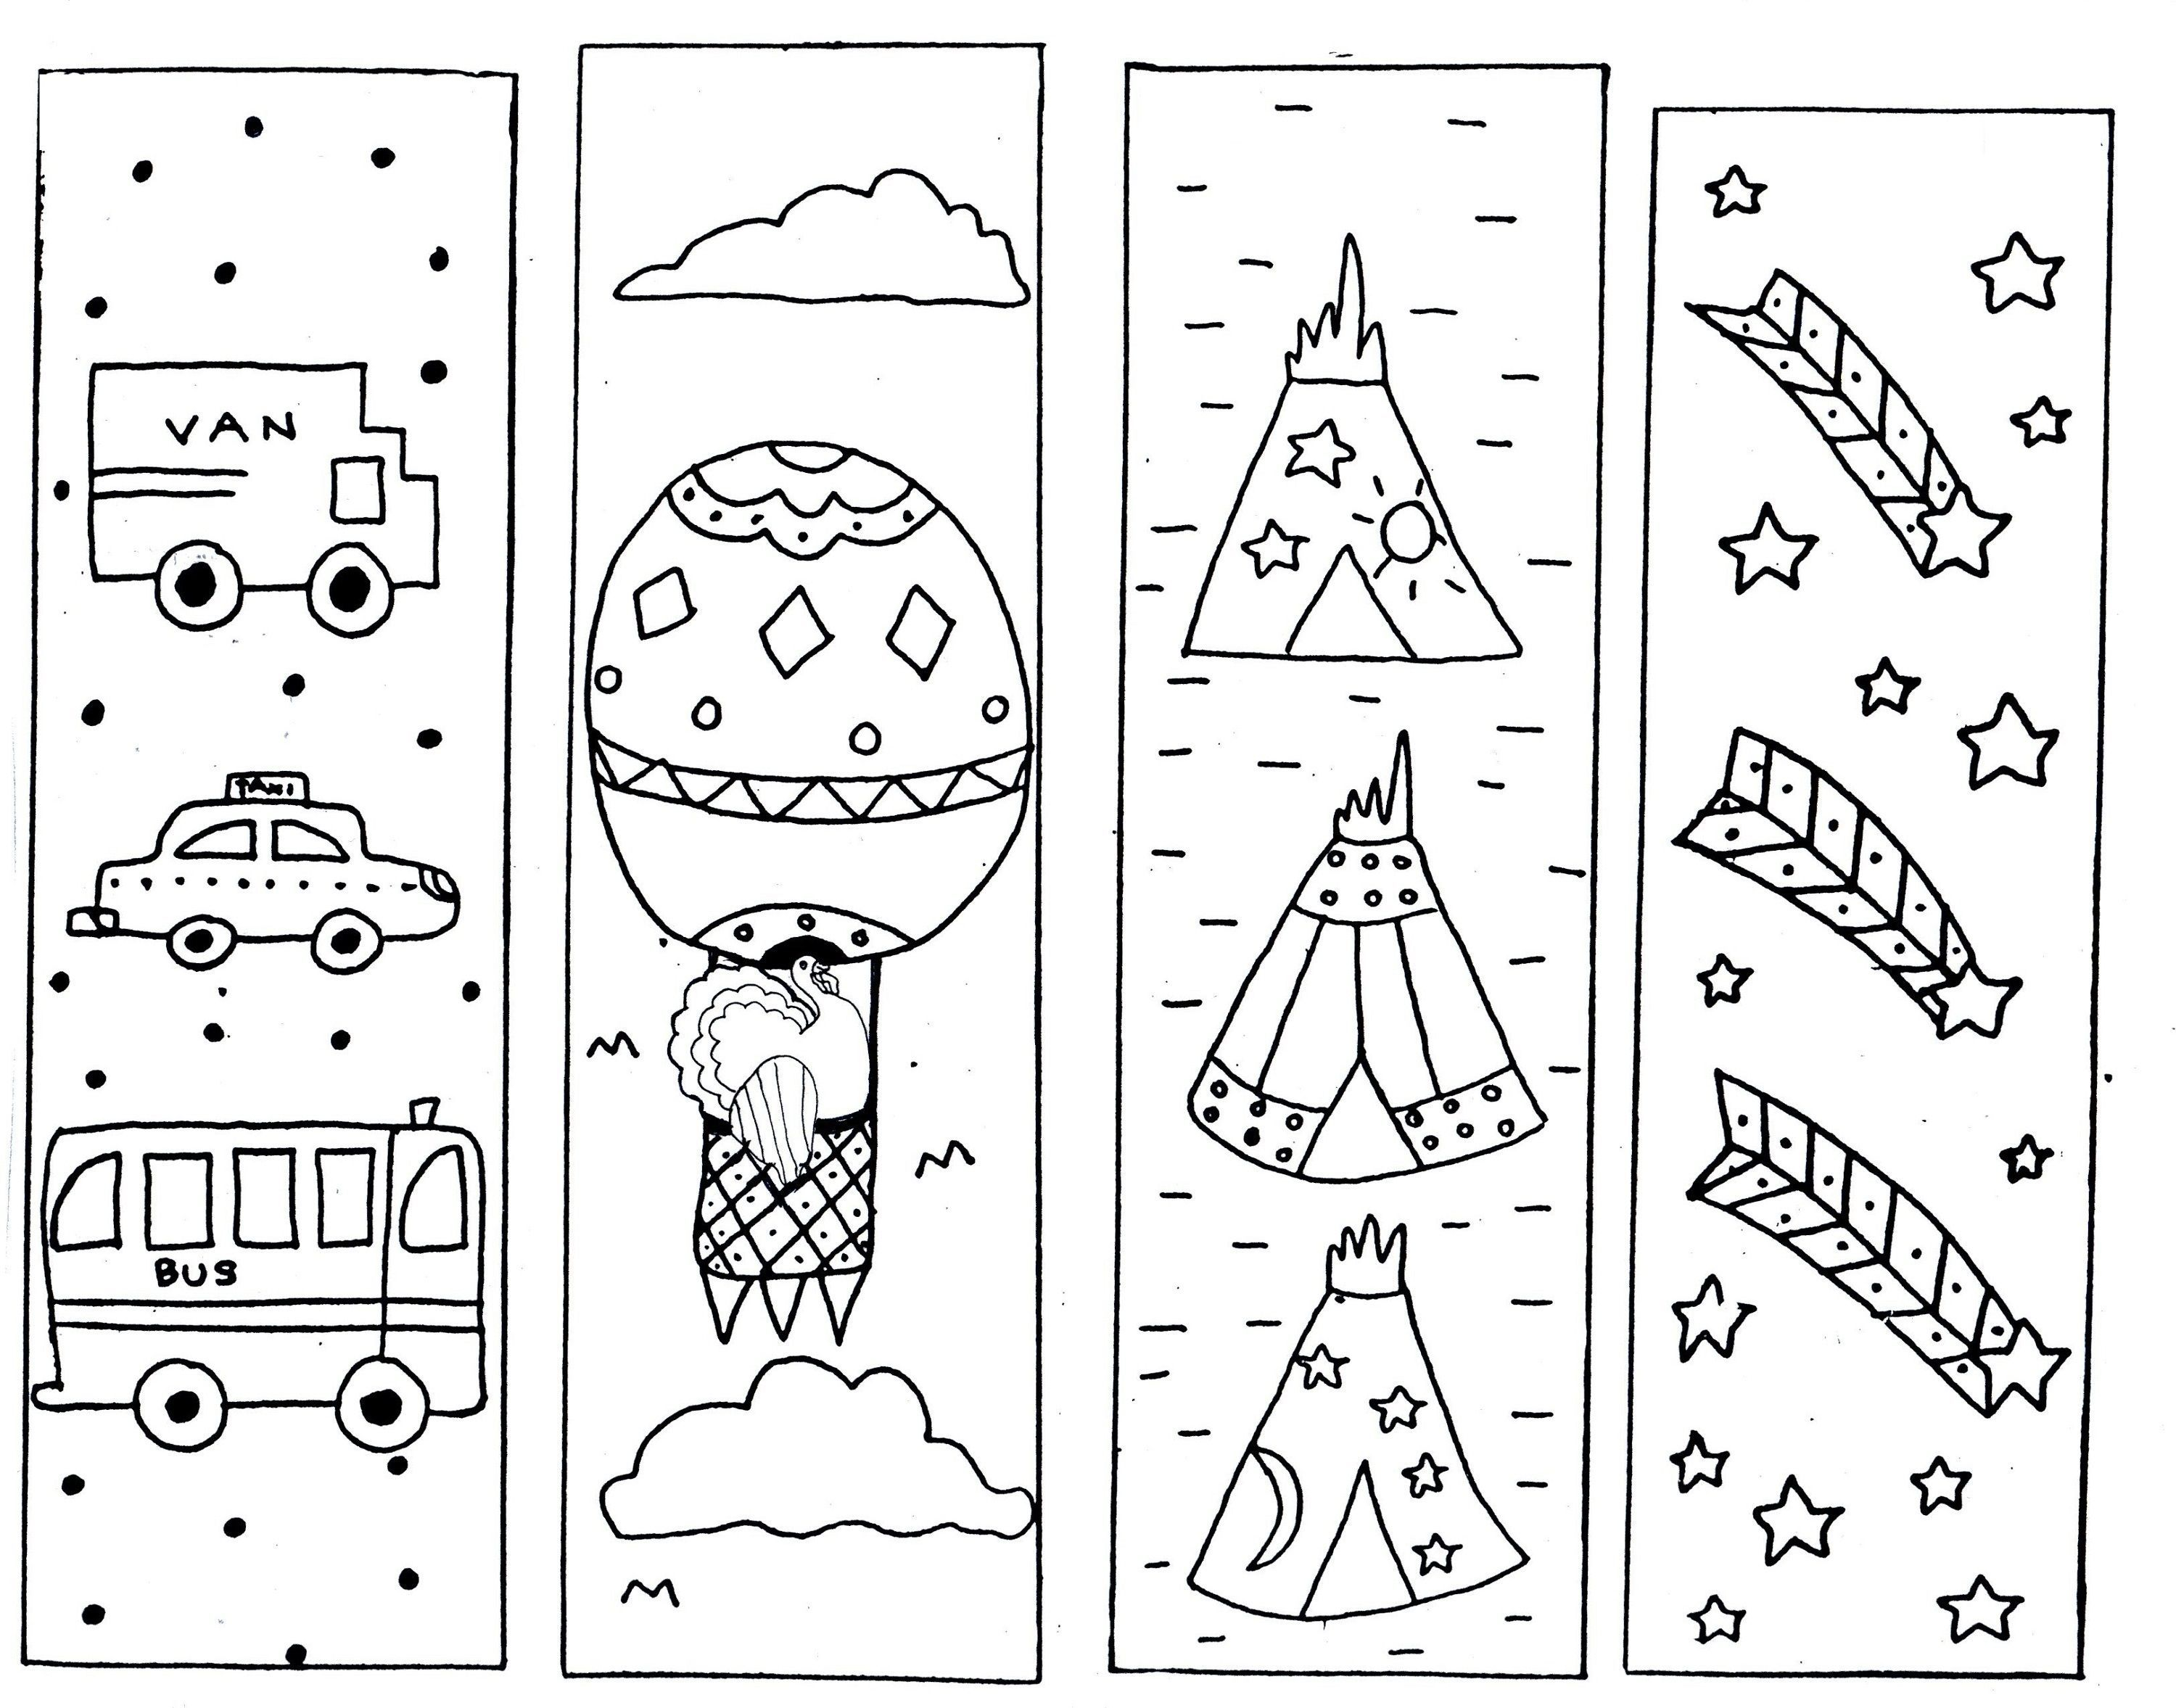 Printable Bookmarks To Color In Practice With Images Coloring